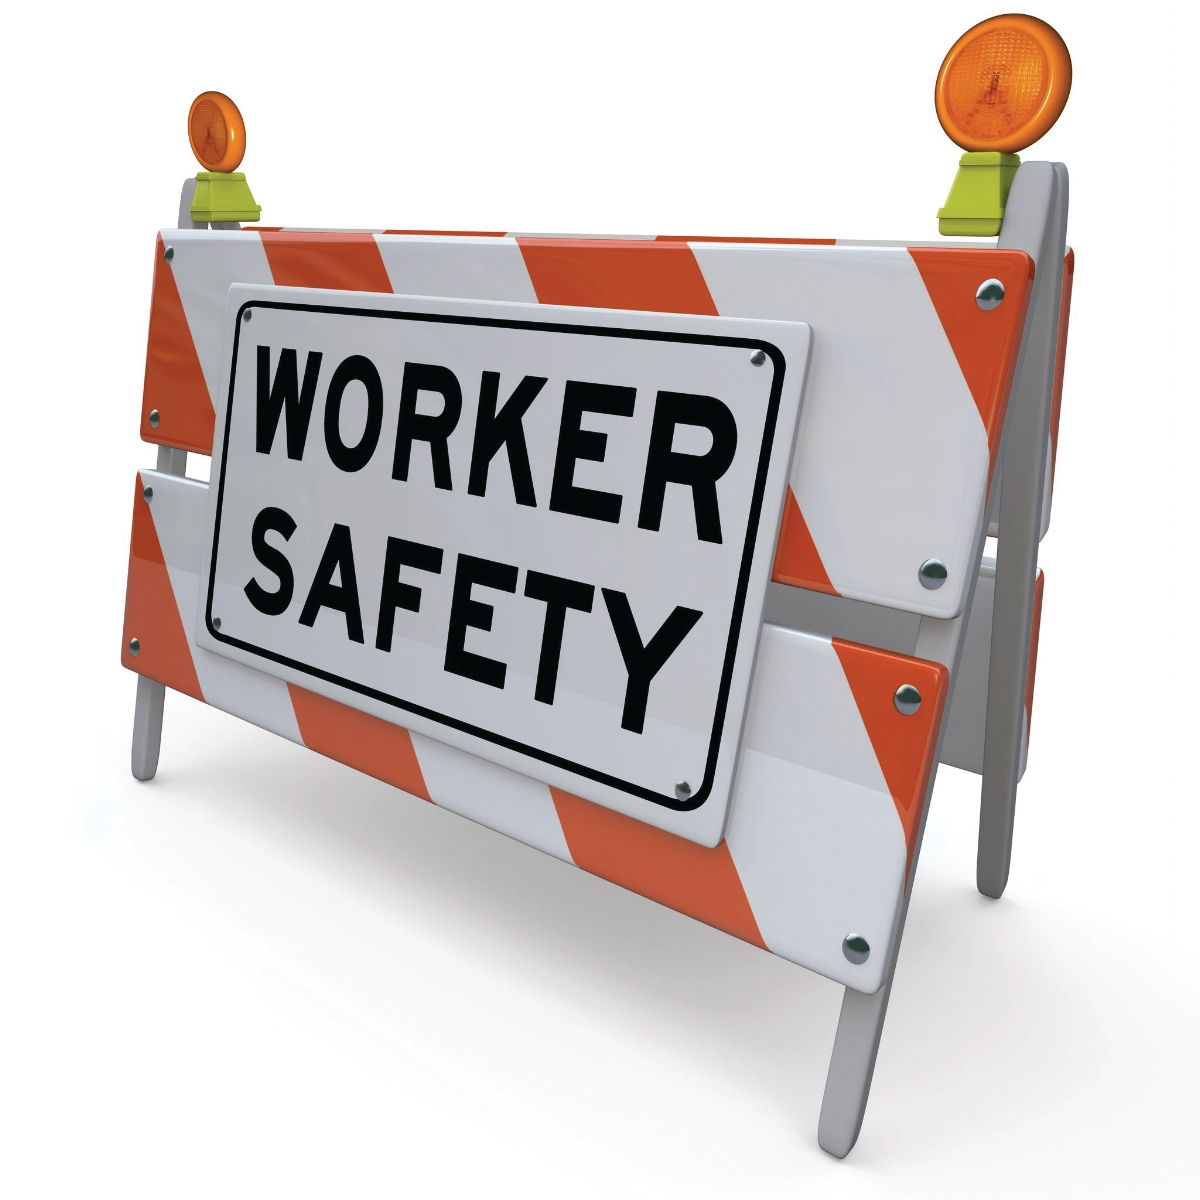 Customized OSHA Trainings - safety elements, ltd. provides an array of consulting services, respiratory fit testing, OSHA  (Industrial Truck, HAZWOPER, GHS, Confined Space, Fire Safety / Extinguisher, Emergency Evacuation, Bloodborne Pathogens, etc.), first aid, CPR, RCRA and DOT trainings.  Contact us for more information.